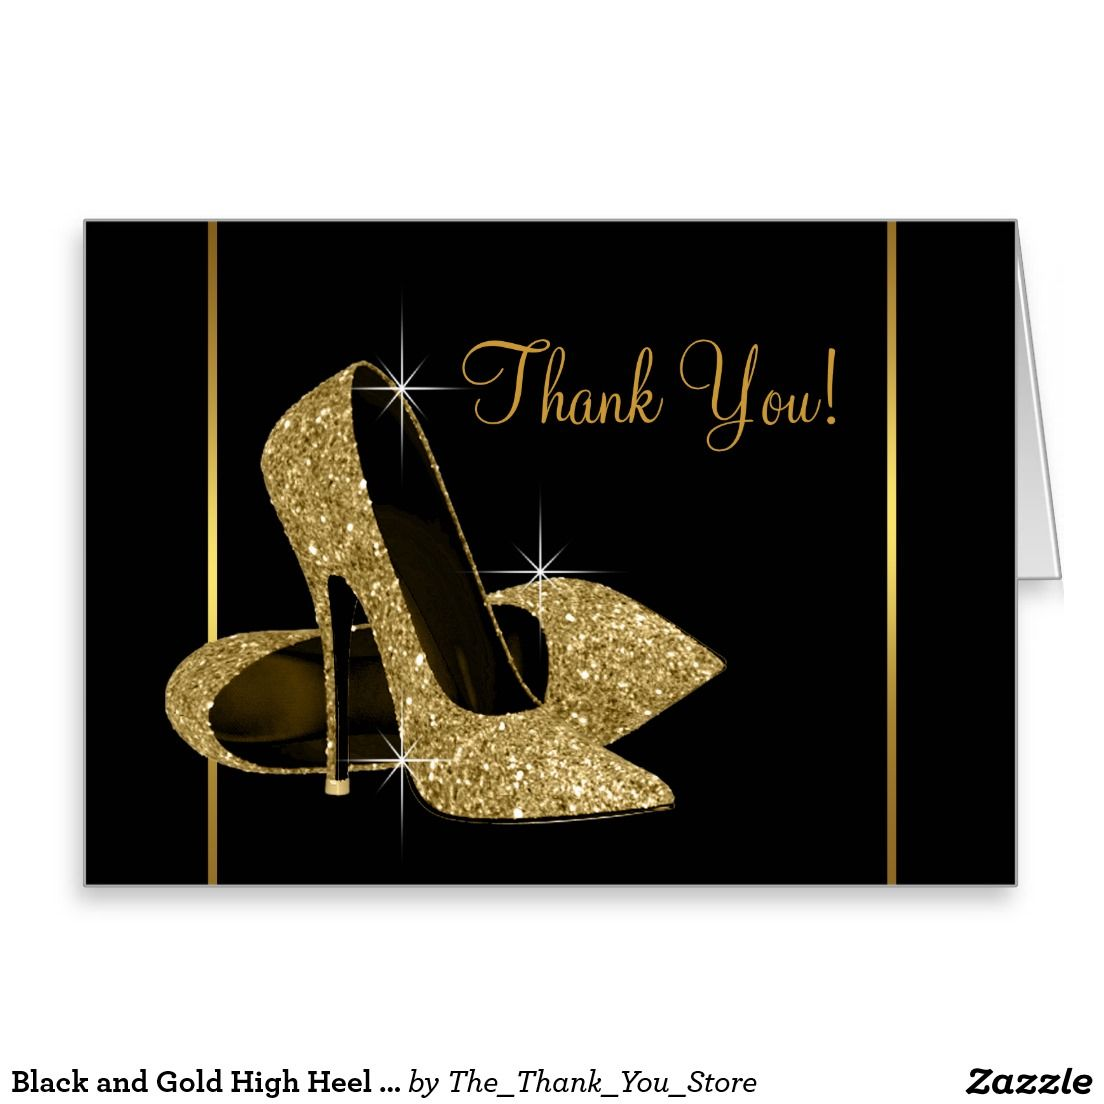 Black And Gold High Heel Shoe Thank You Zazzle Com Gold High Heel Shoes Gold High Heels Black Gold Jewelry